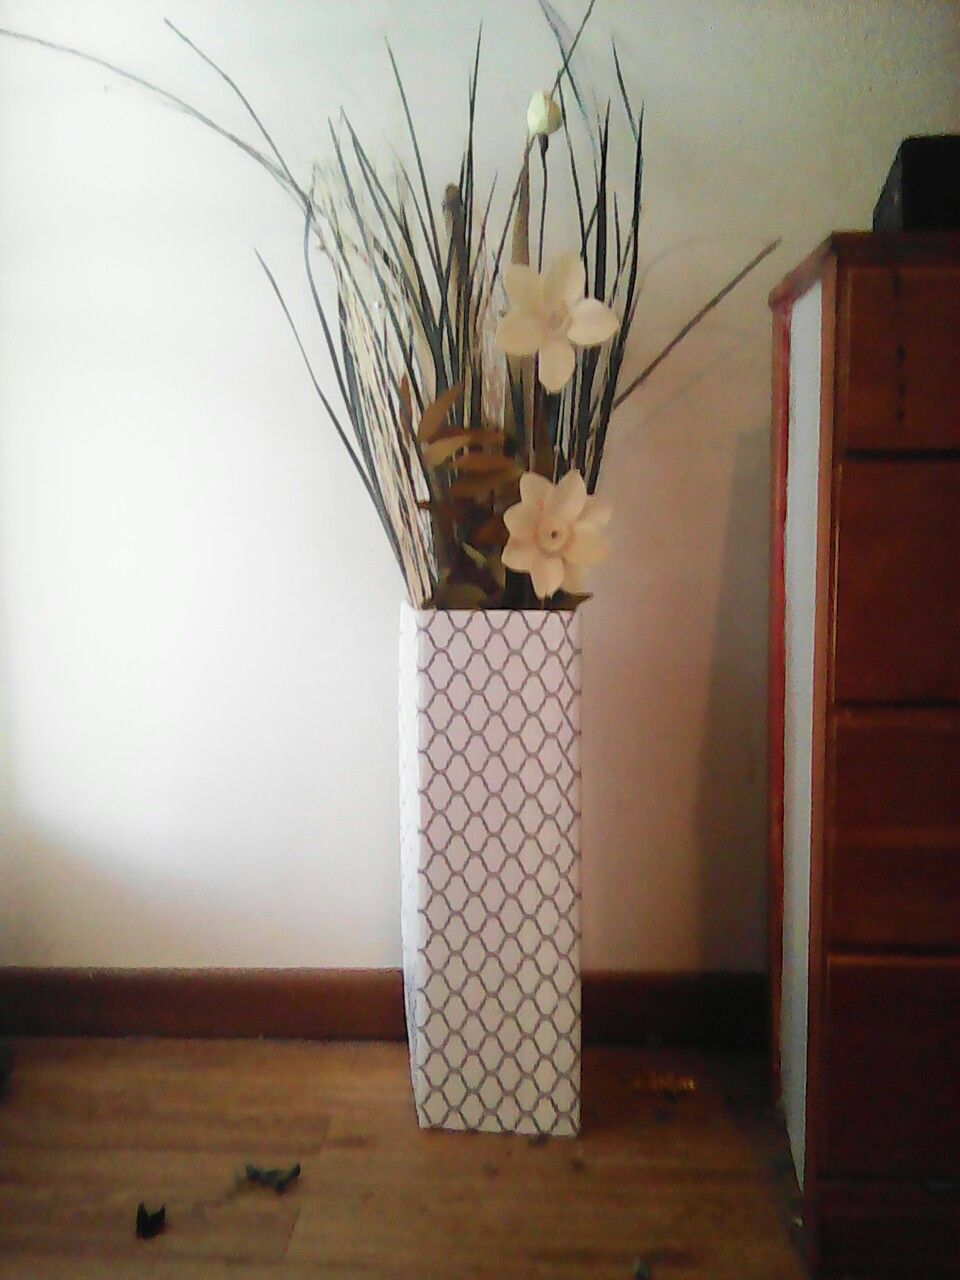 Diy Floor Vases From Cardboard And Contact Paper 5 Diy